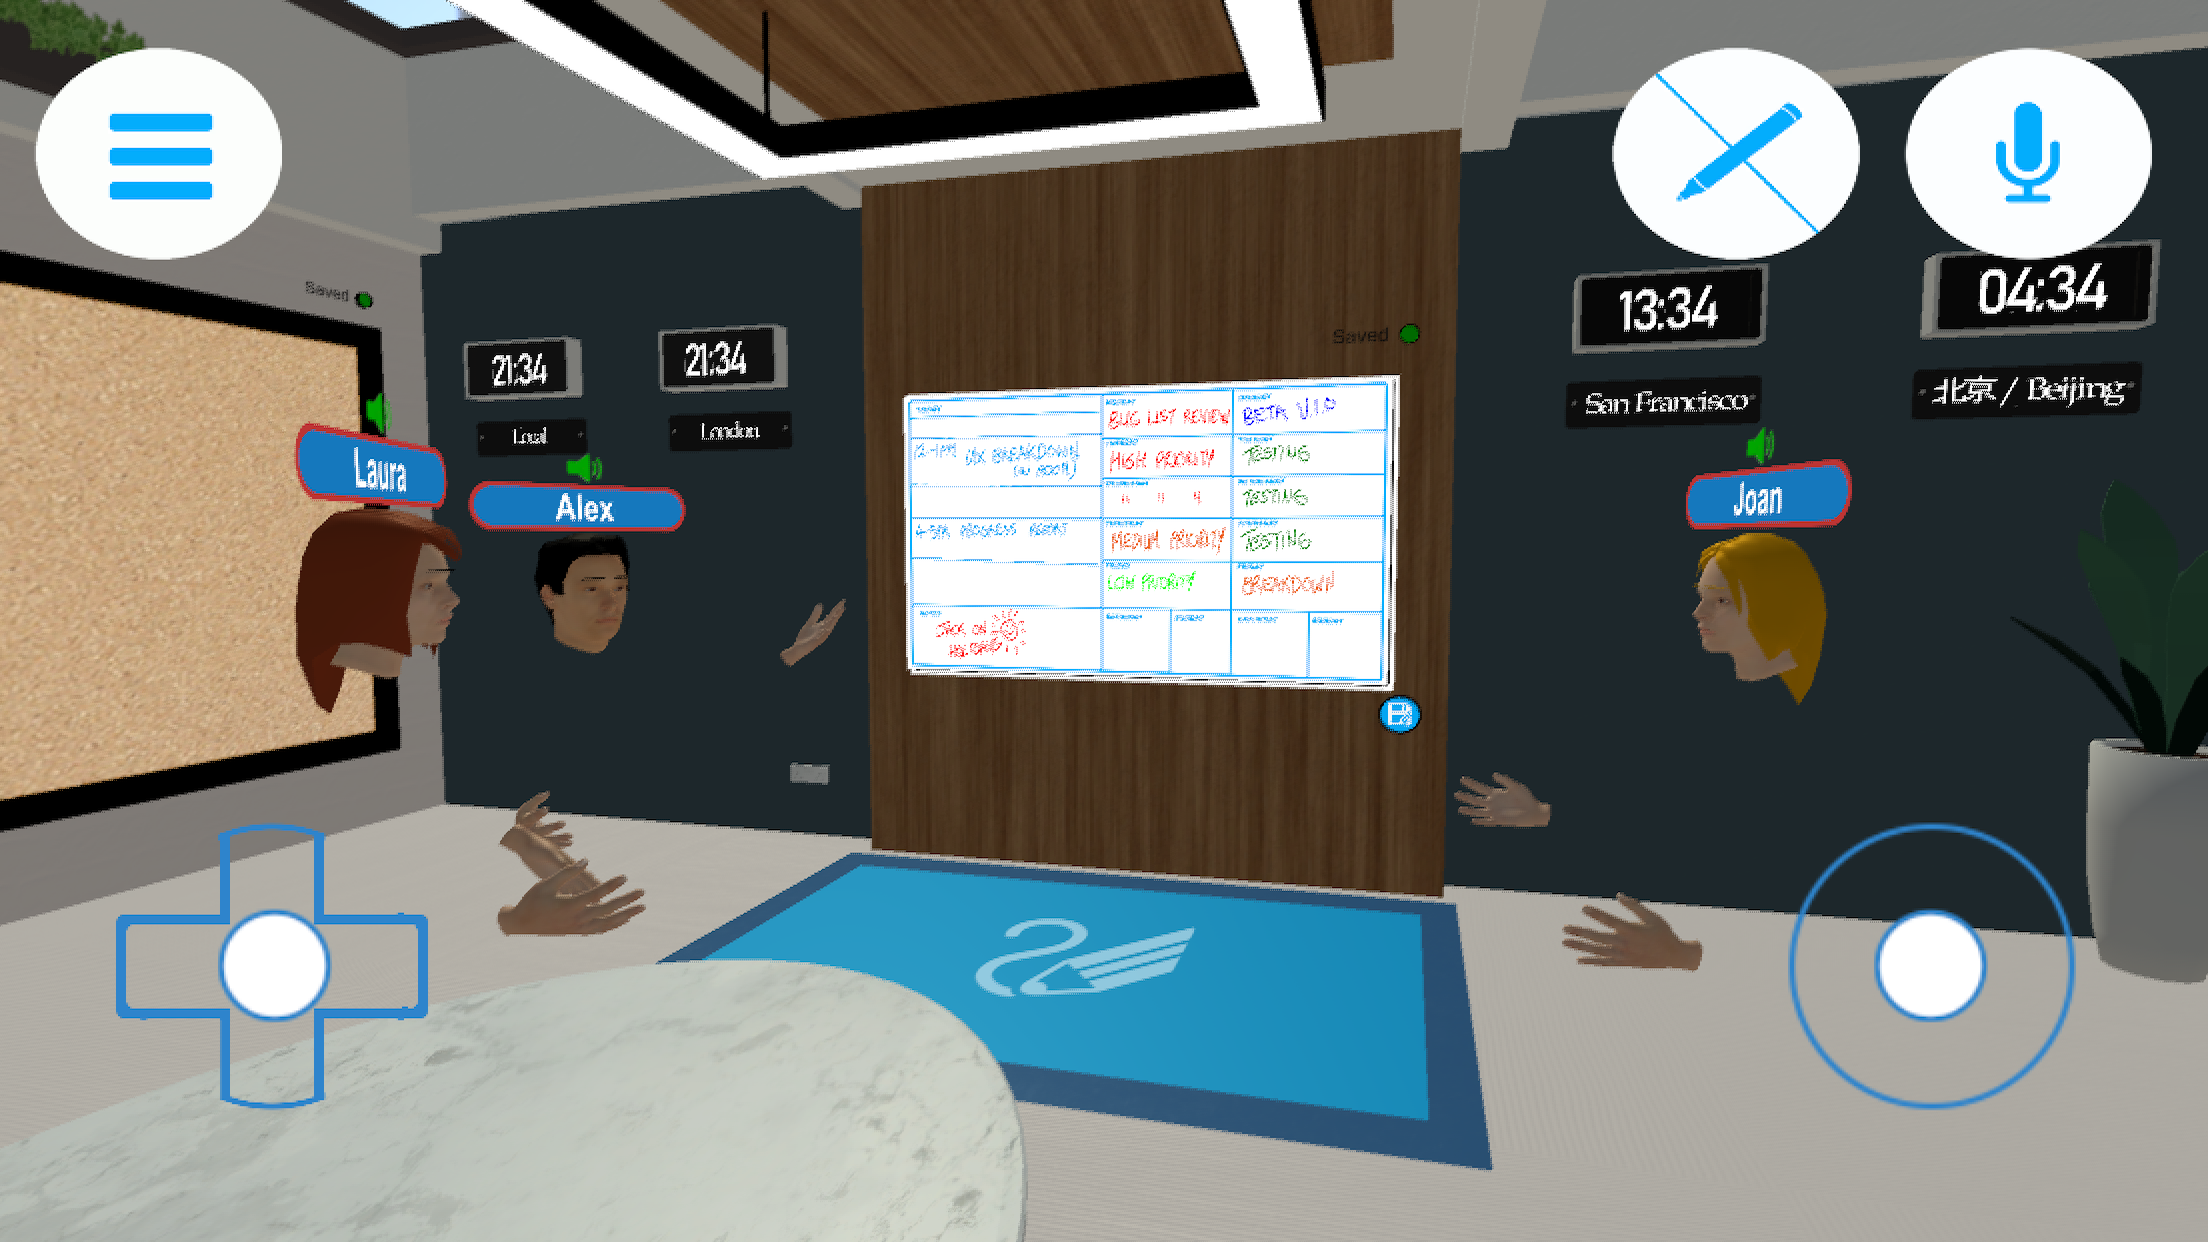 The Virtual Meeting Room Space